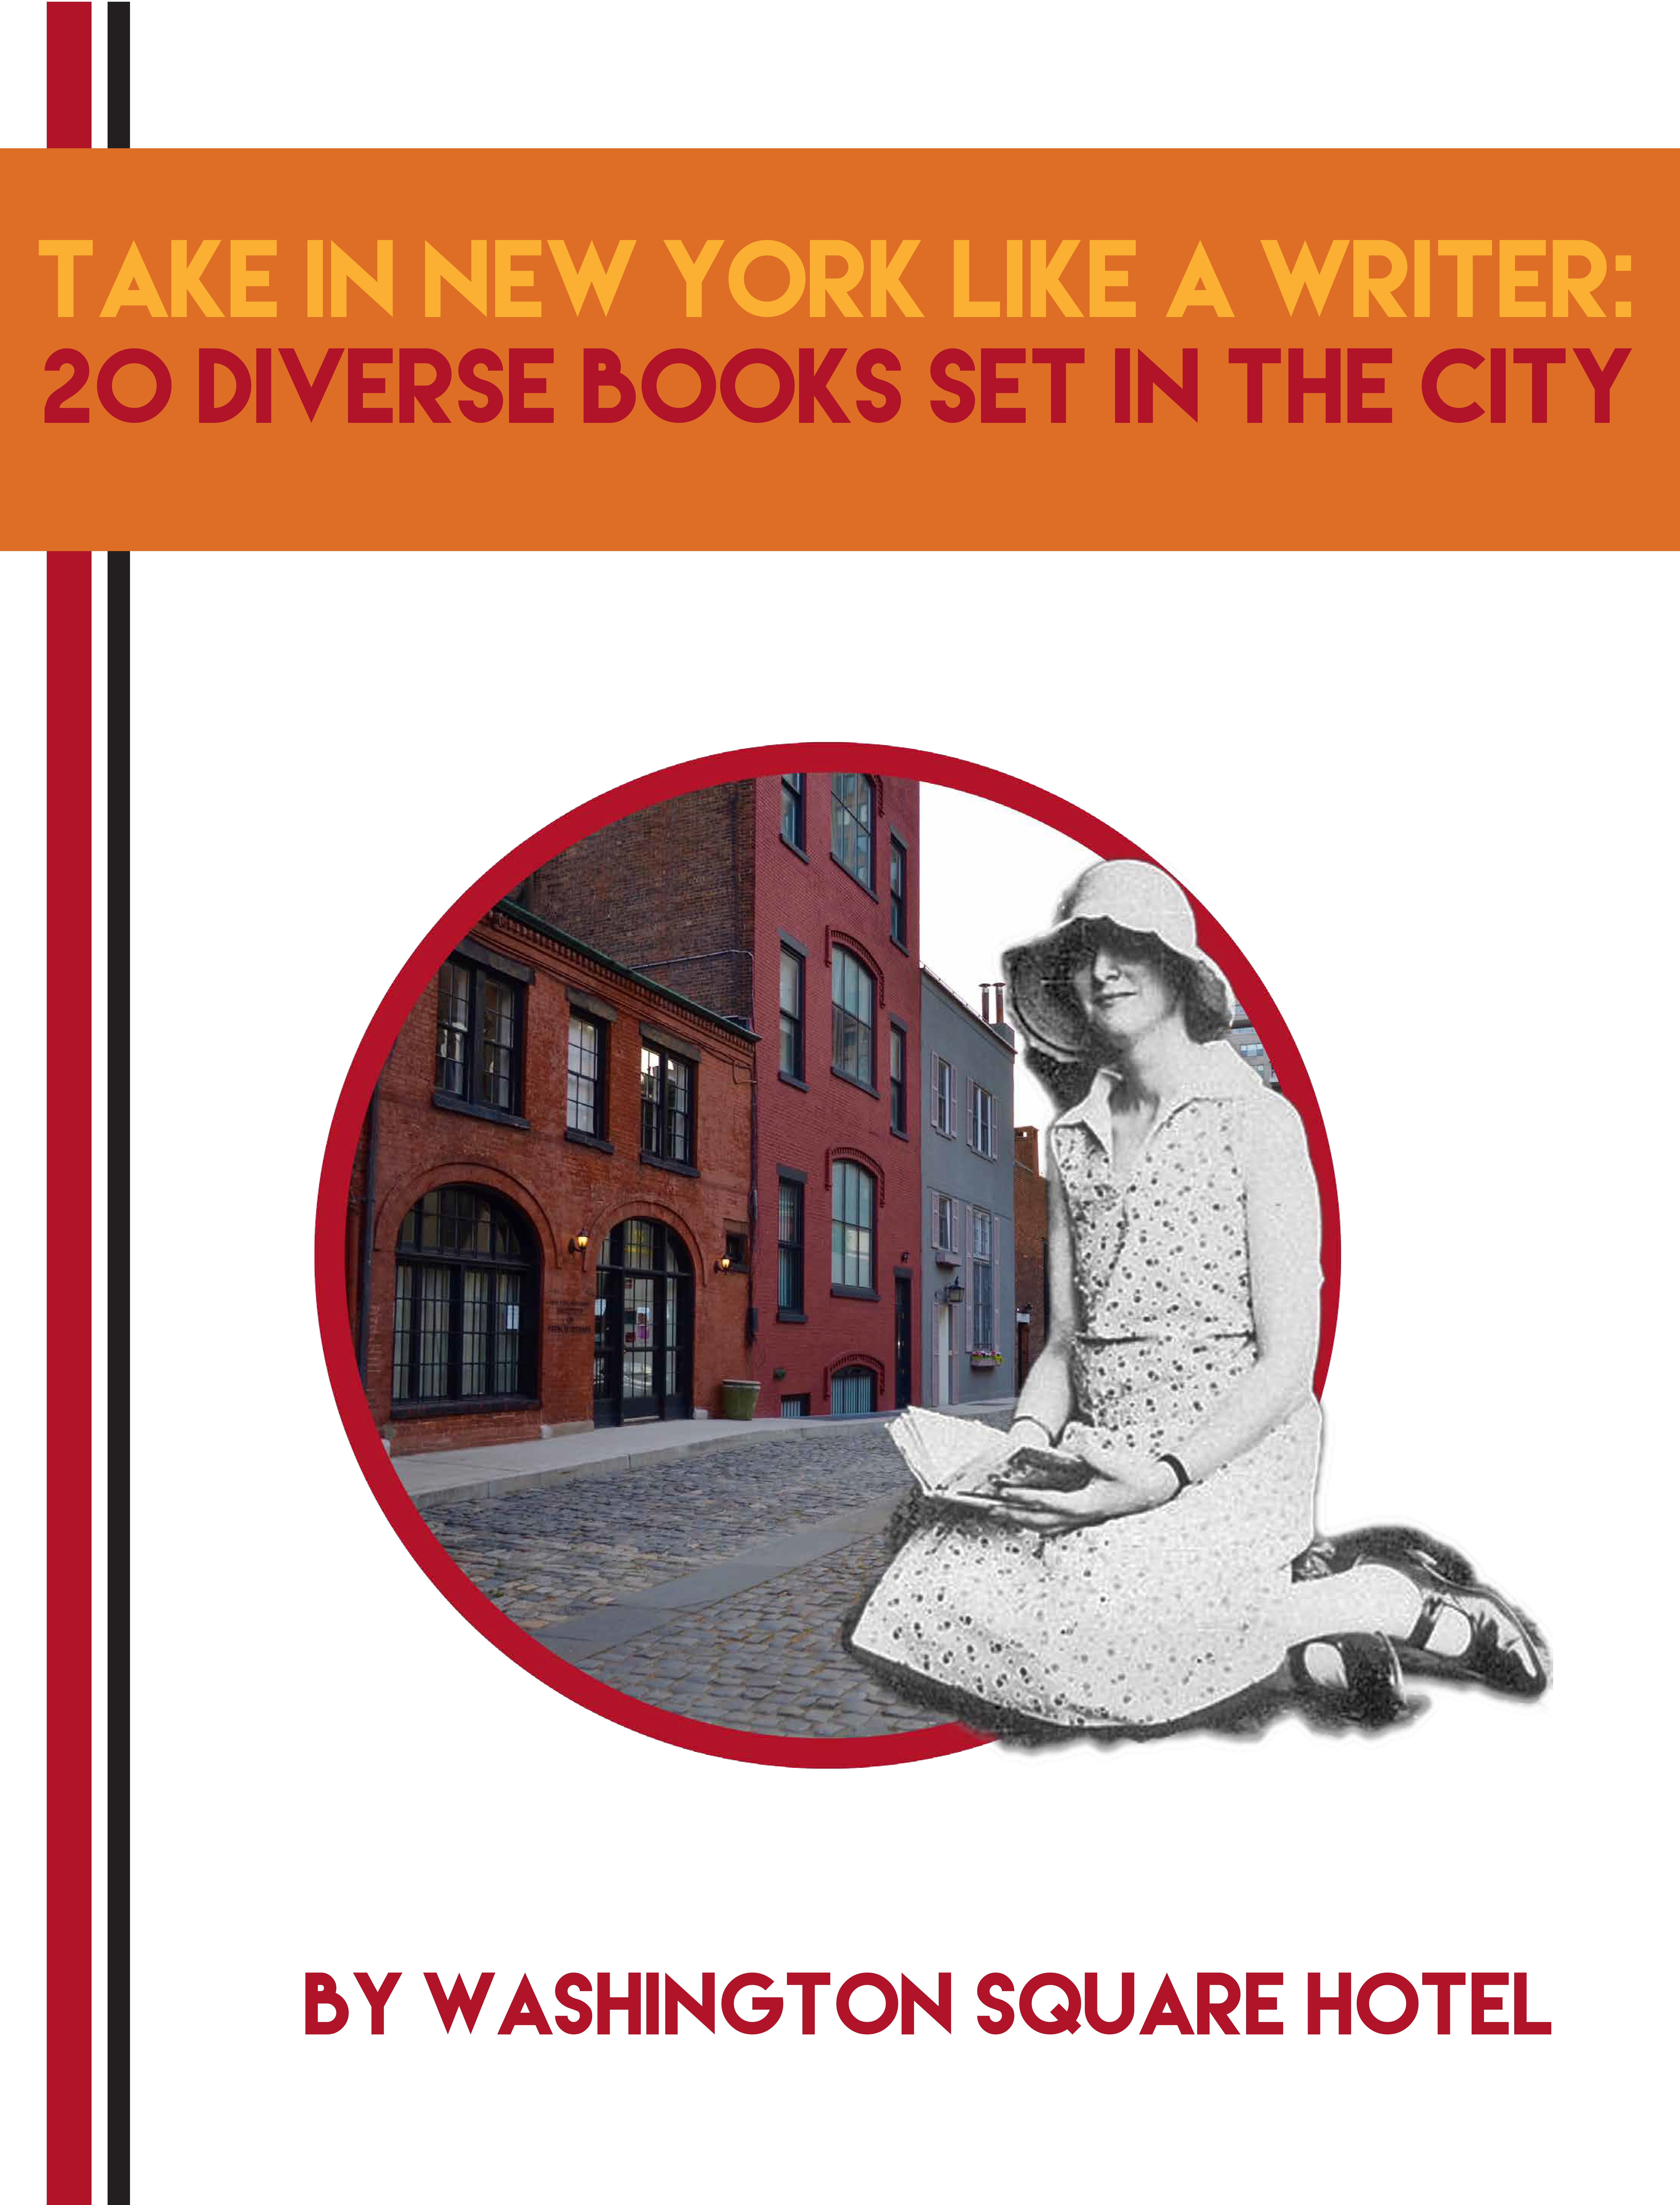 Books-NYC-Cover.jpg